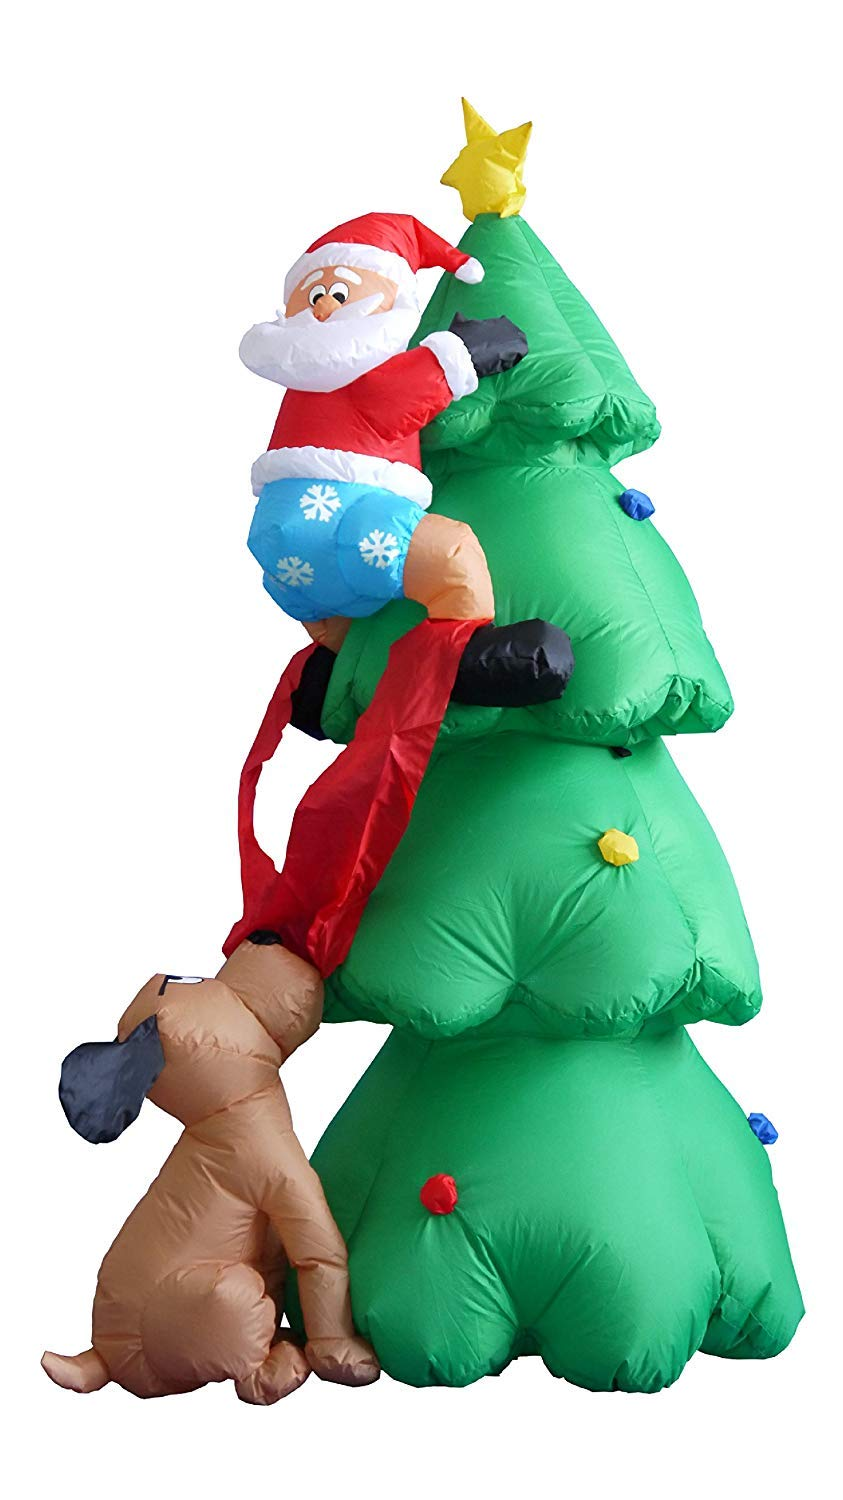 Poptrend 6 Feet Inflatable Santa Claus Climbing on Christmas Tree Chased by Dog with LED Light